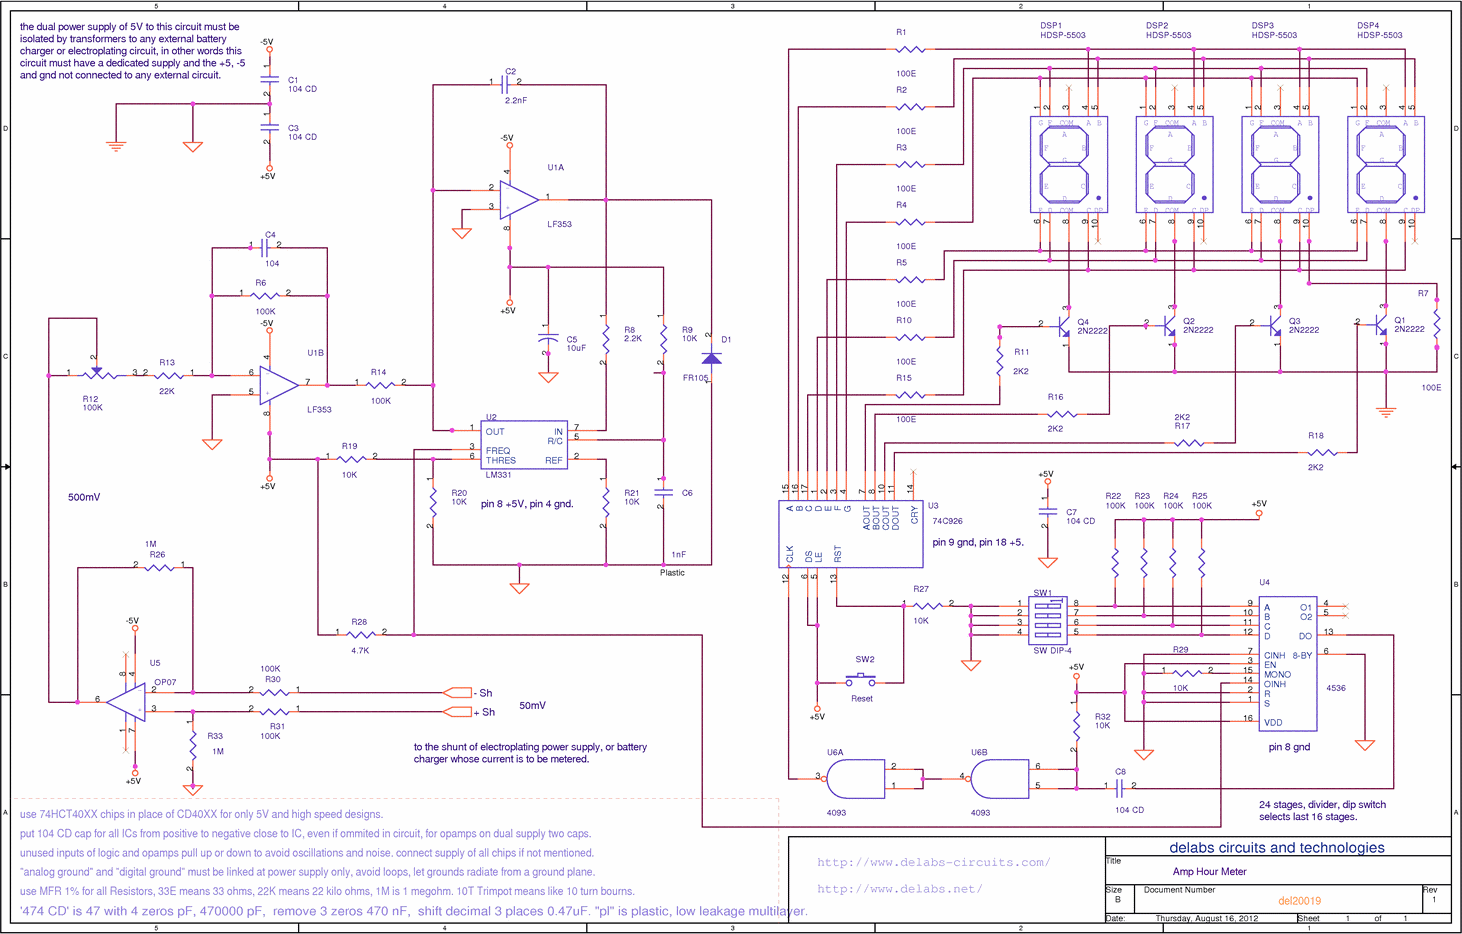 5dd0d92b8bd0478c2d6465ff2200f11f schematics of delabs amp hour meter using lm331 and 74c926 tech hobbs meter wiring diagram at soozxer.org